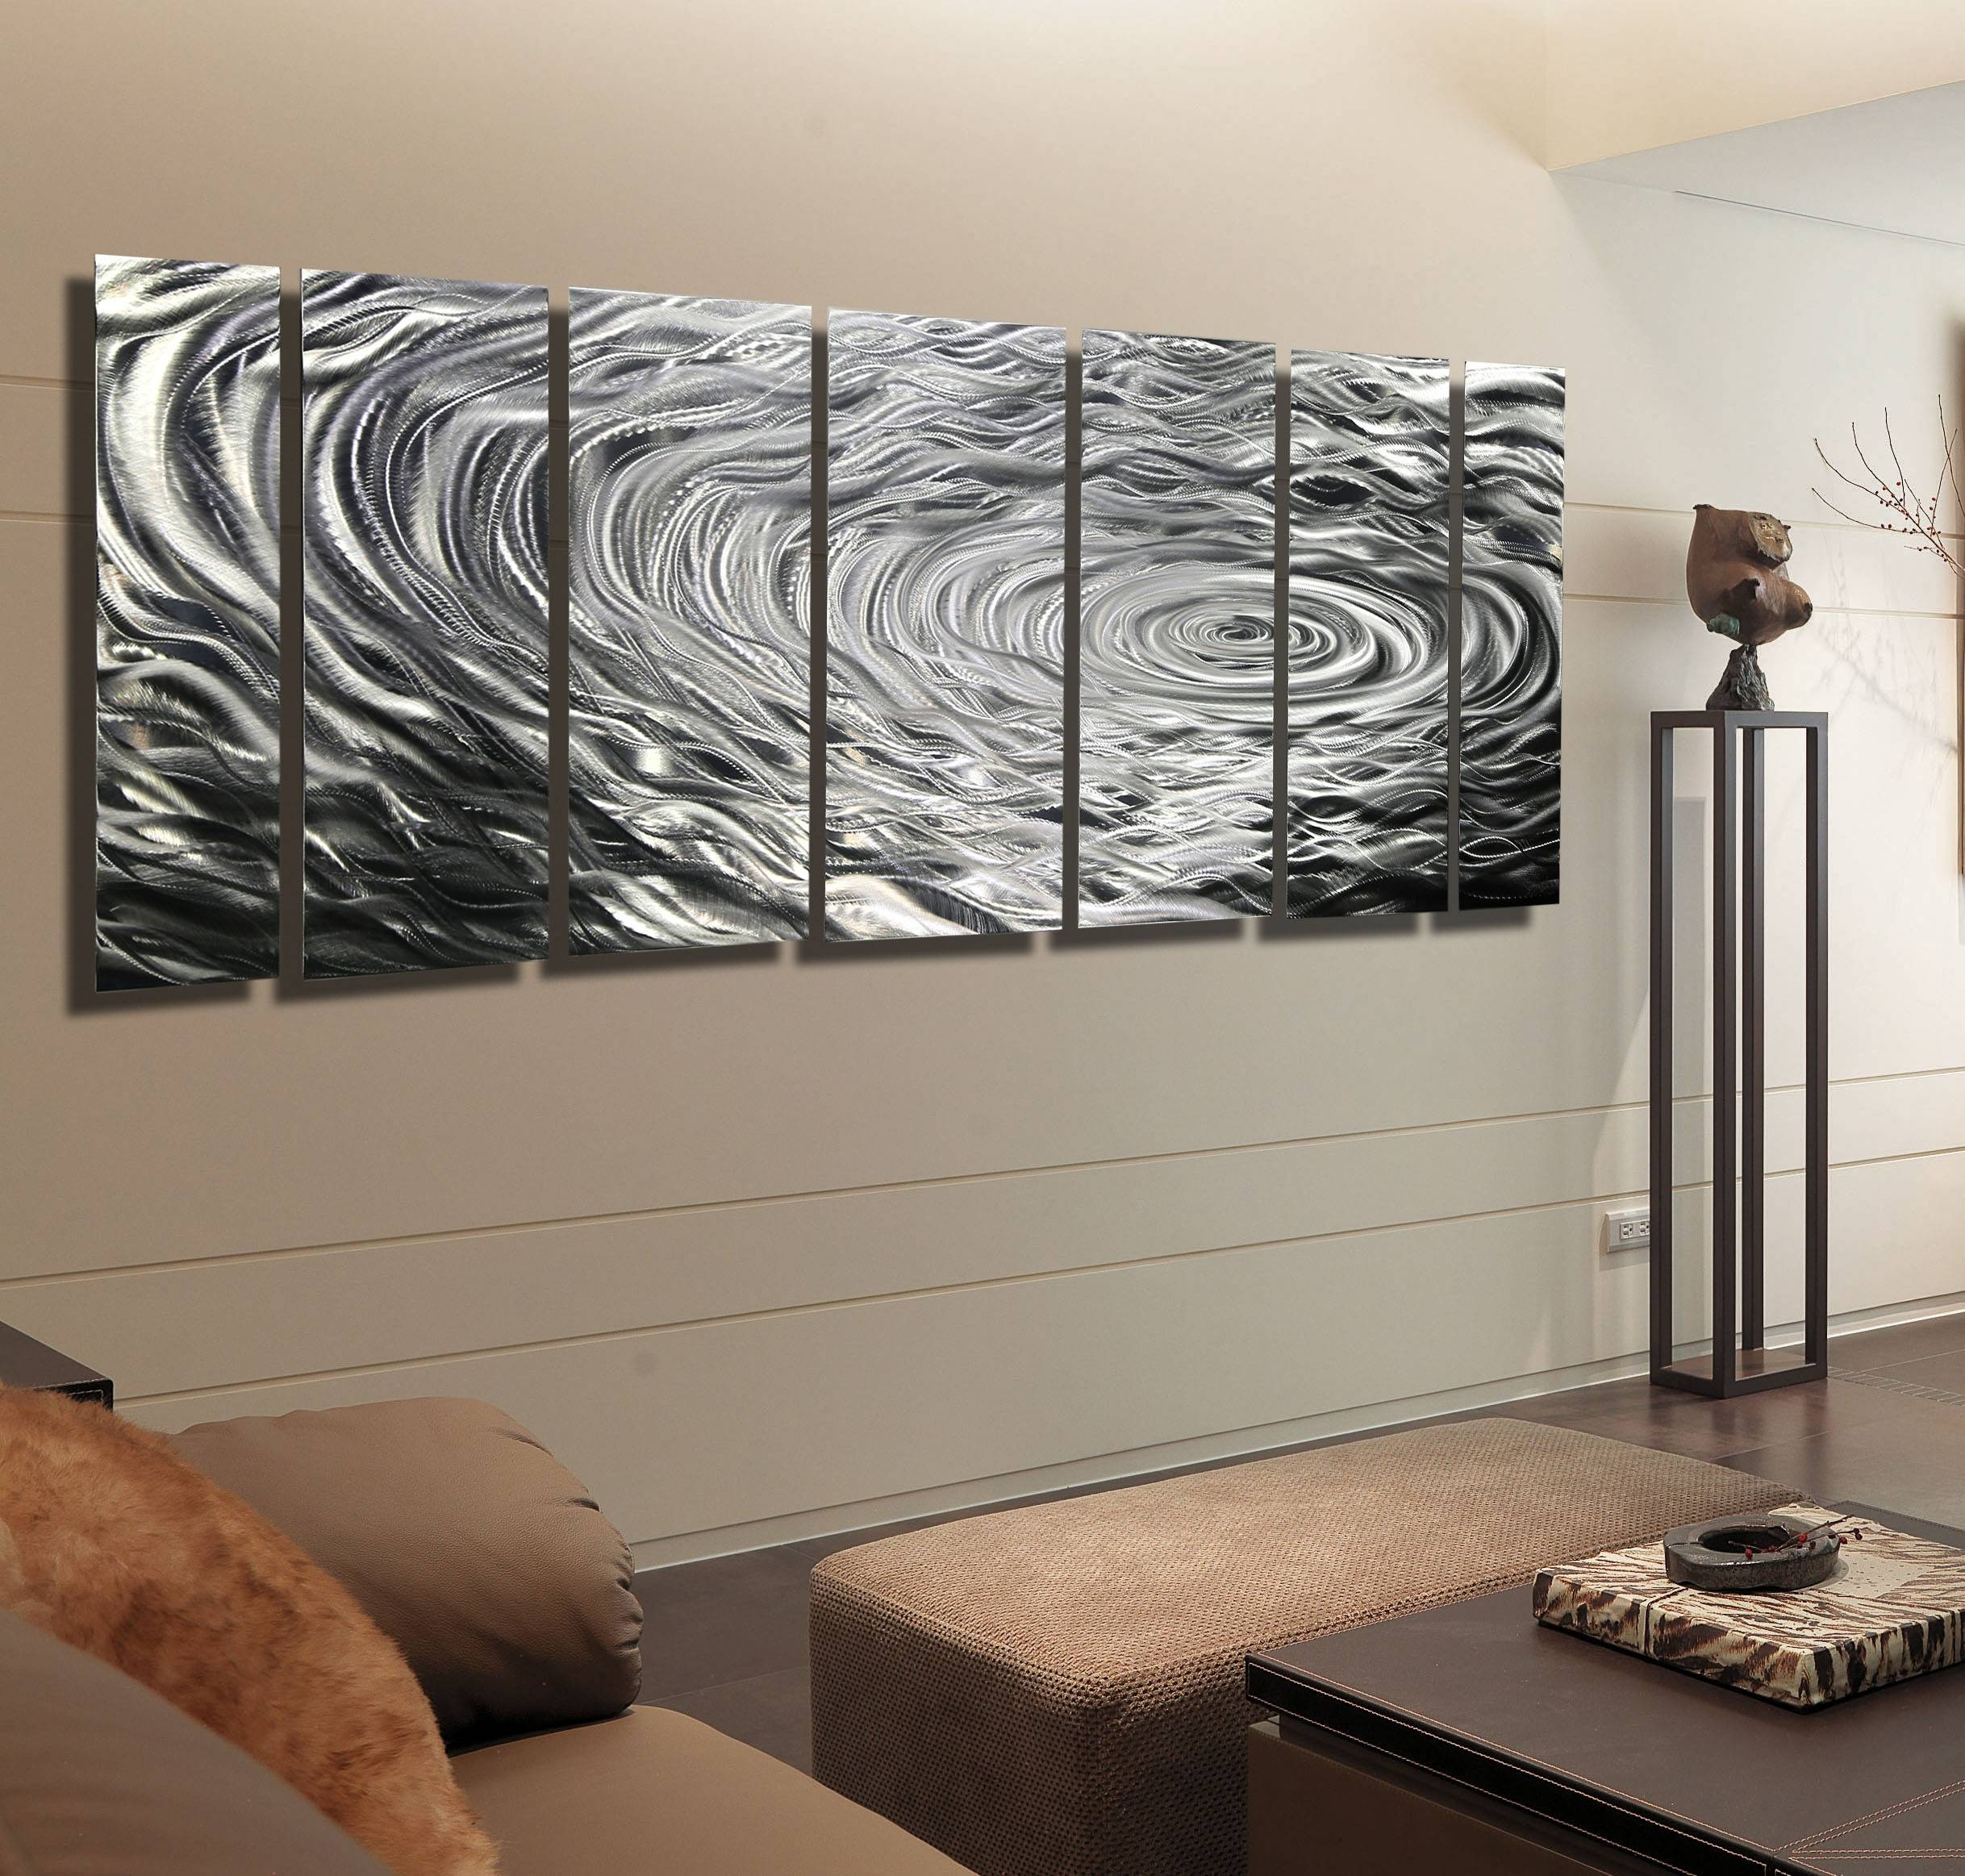 Ripple Effect Xl – Silver Abstract Corporate Metal Wall Art Decor In Best And Newest Modern Metal Wall Art (Gallery 7 of 20)